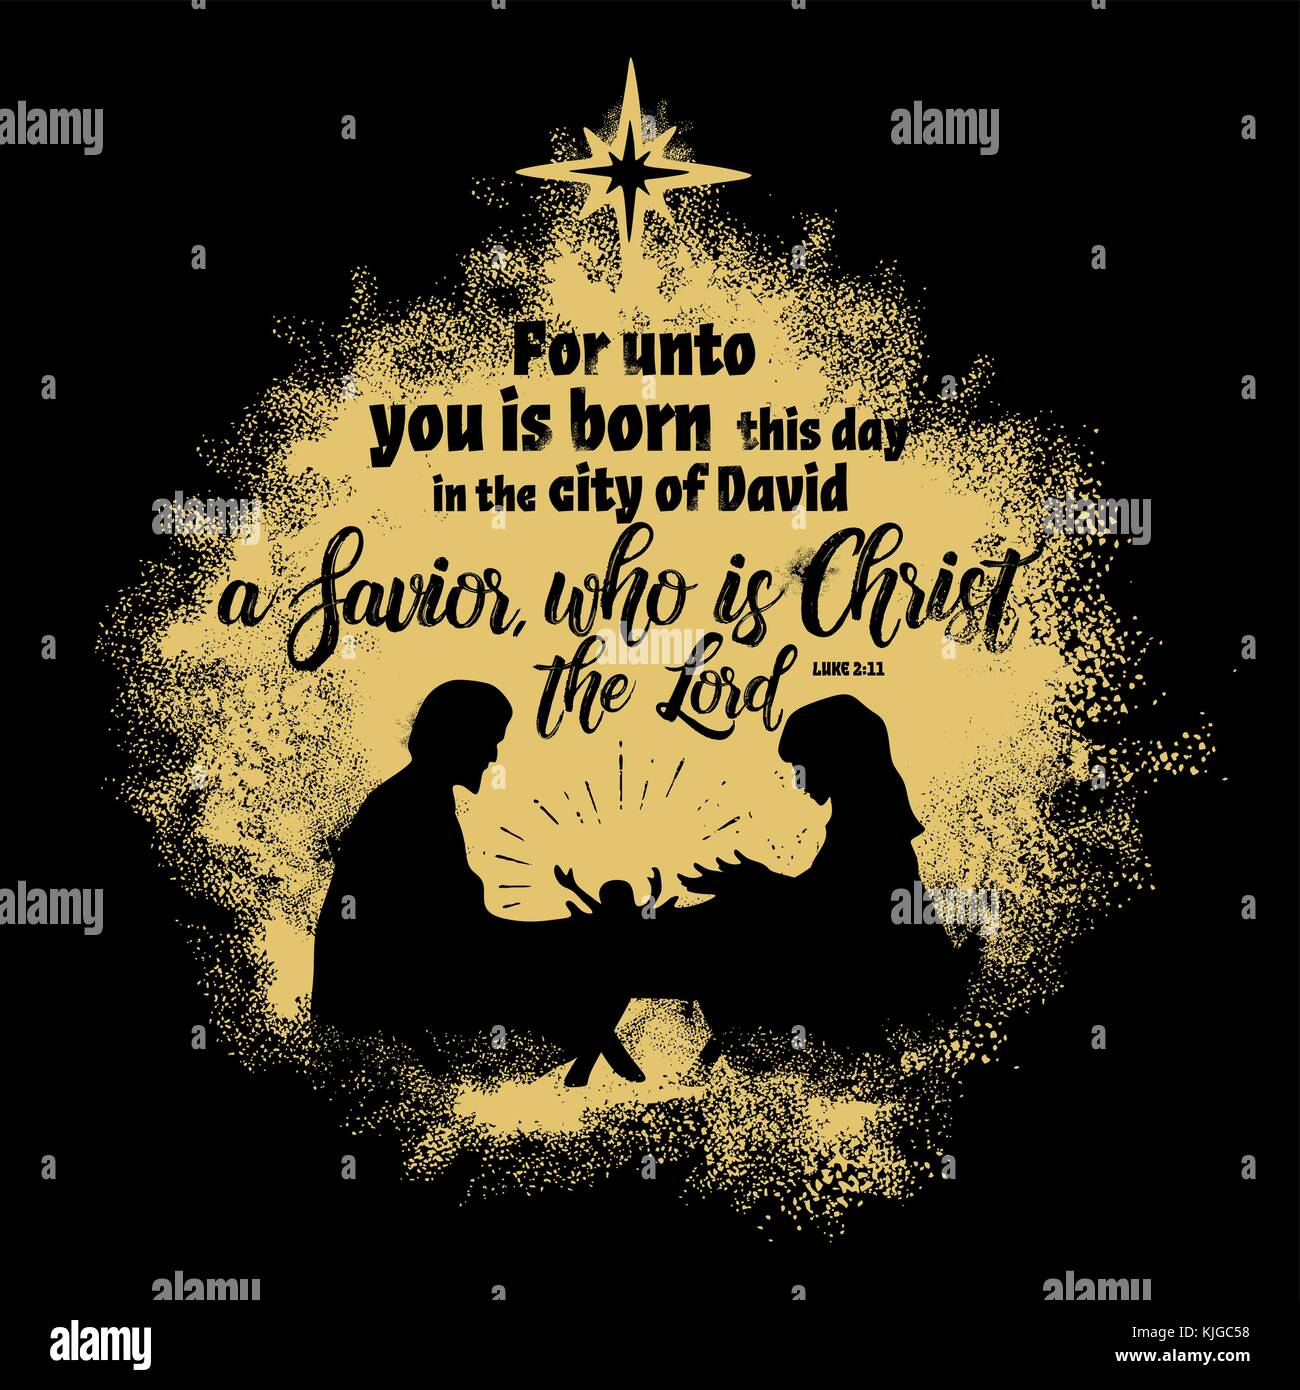 Image result for for unto you is born this day